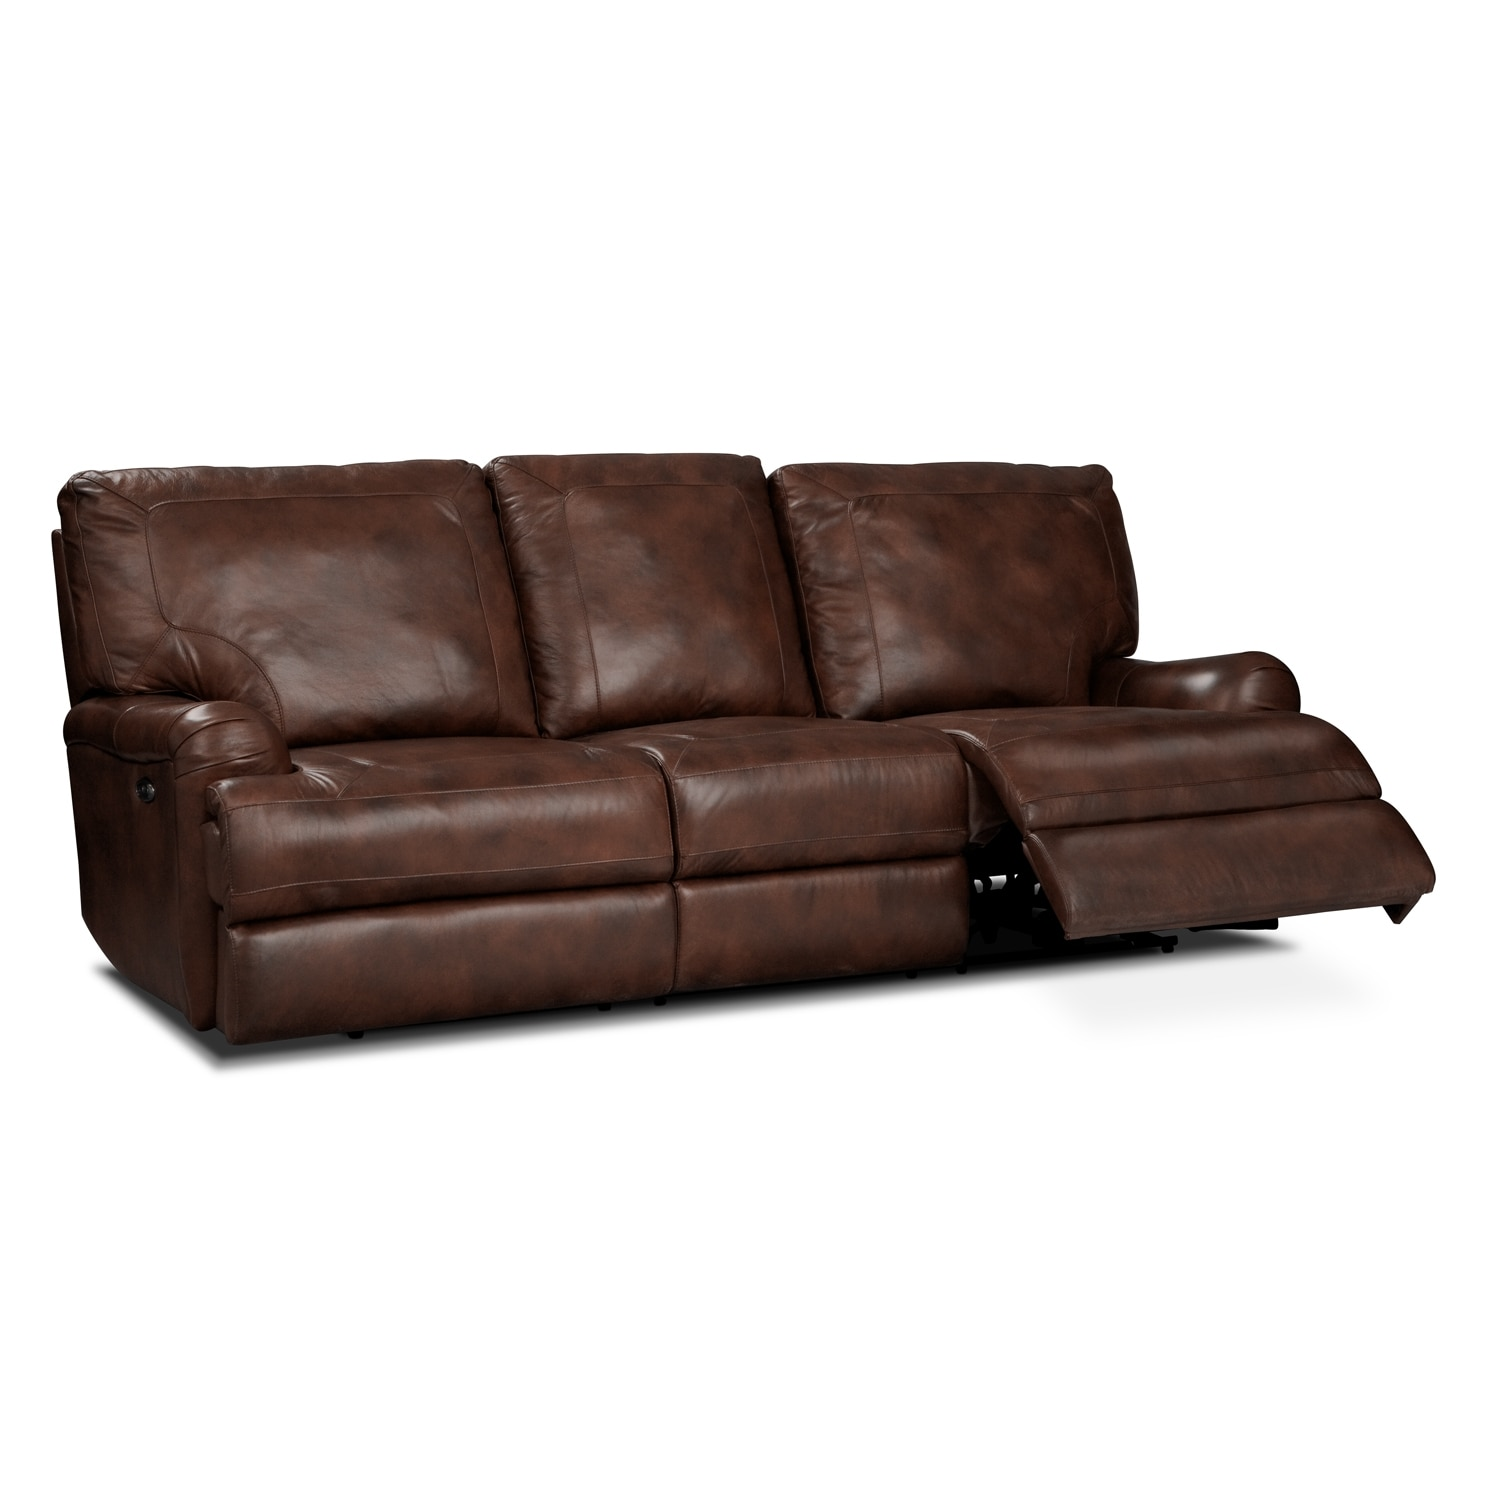 Kingsway Leather Power Reclining Sofa Value City Furniture : 360873 from valuecityfurniture.com size 1500 x 1500 jpeg 414kB